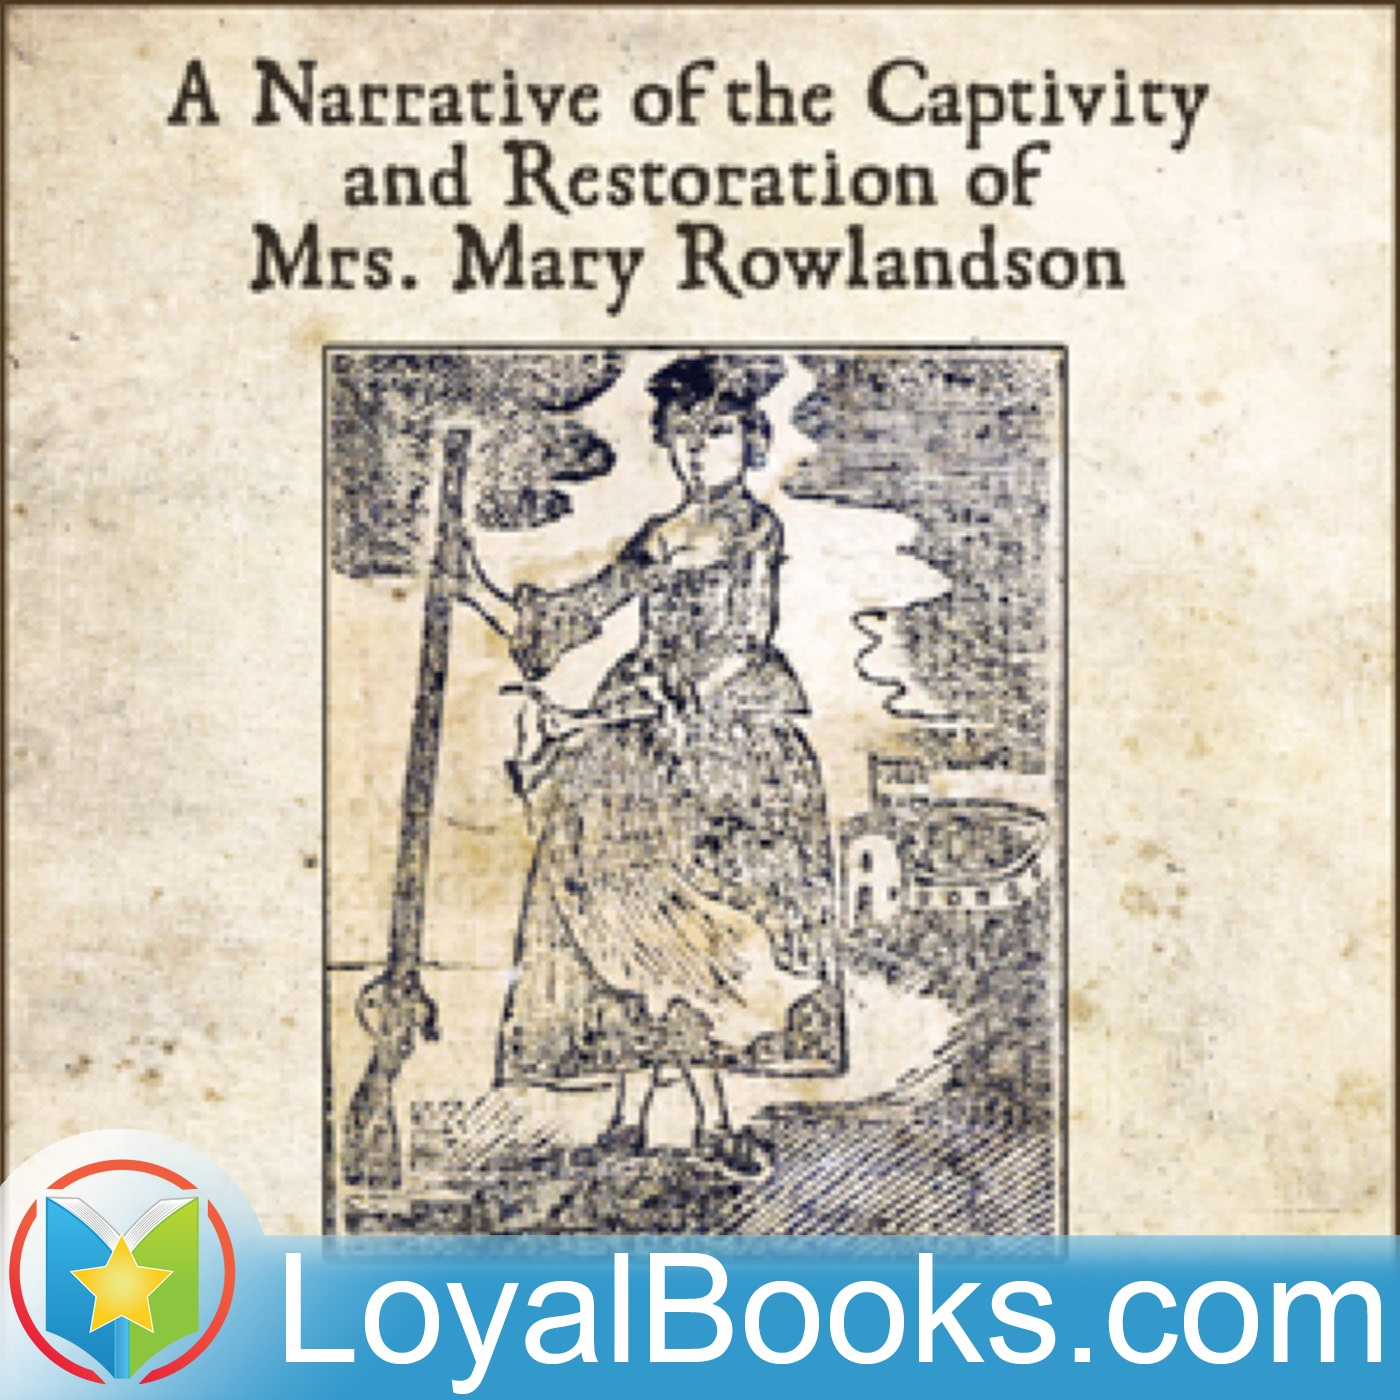 rowlandson captivity narrative essay Mary white rowlandson's account of her experience as a prisoner of the algonkian indians is one of the earliest and well known captivity narratives, with over thirty editions published to date yet, the depth of rowlandson's narrative reaches far beyond the narrow definitions of that genre.